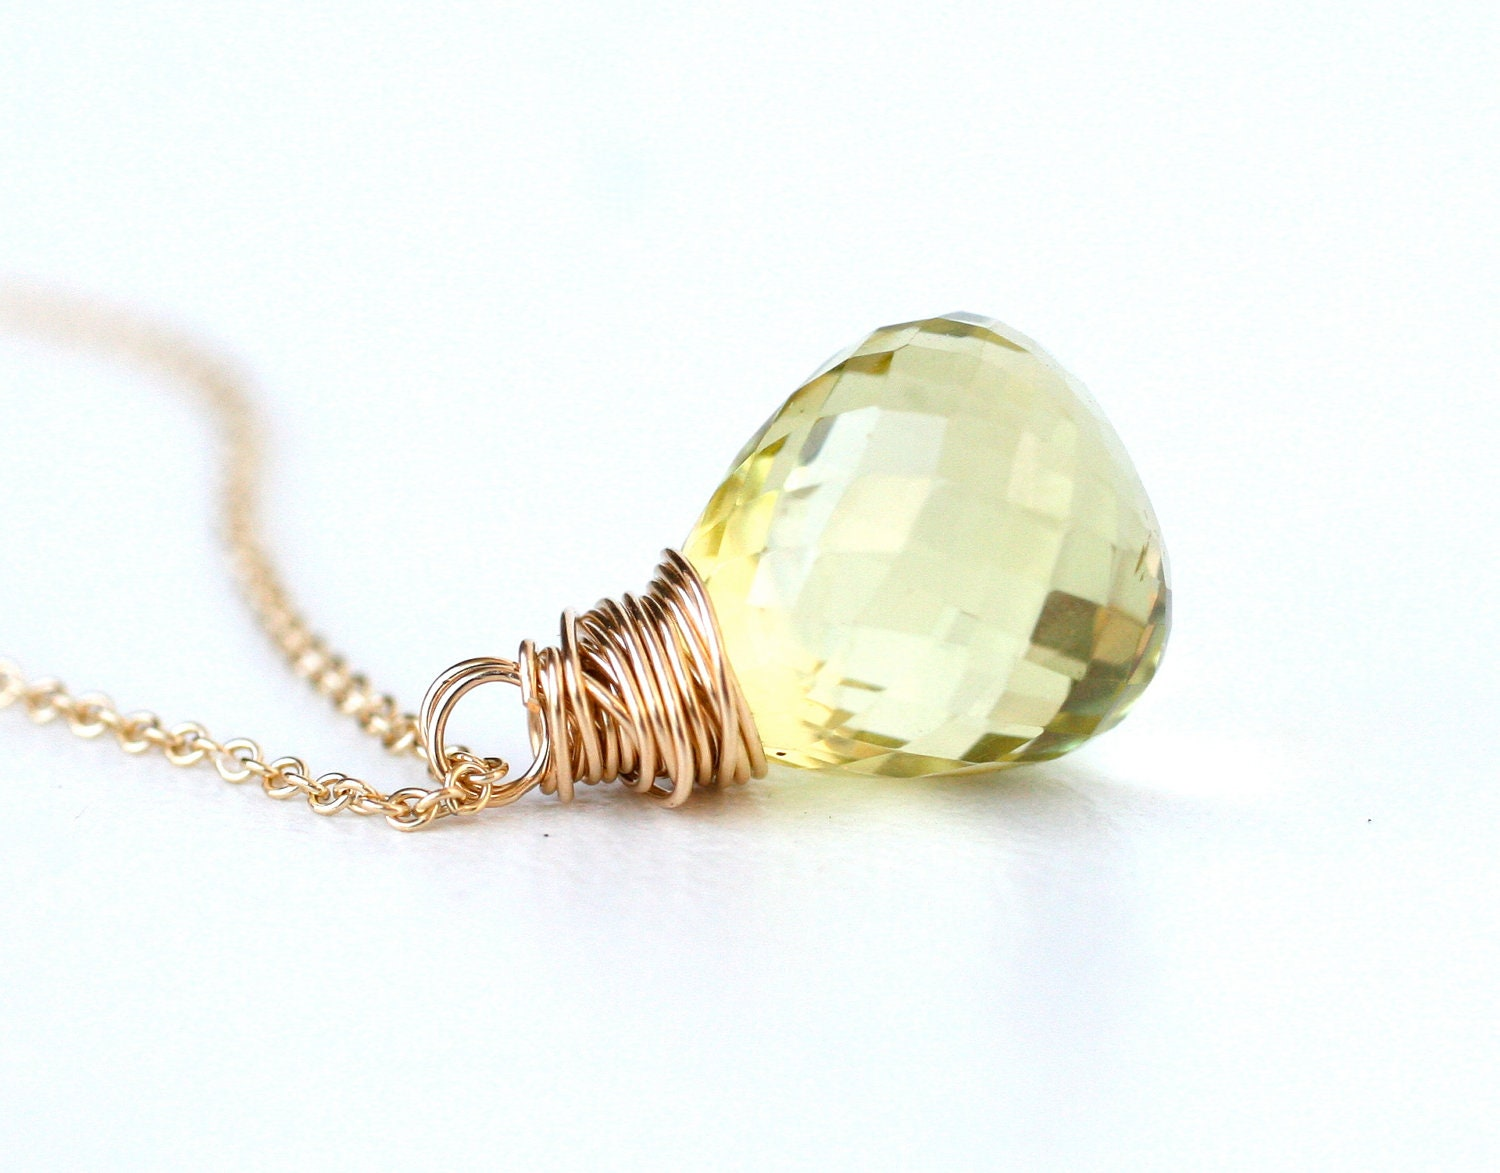 Topaz Necklace on Aaa Lemon Topaz Necklace 14k Gold Filled   Simple  Everyday Wear  Gift